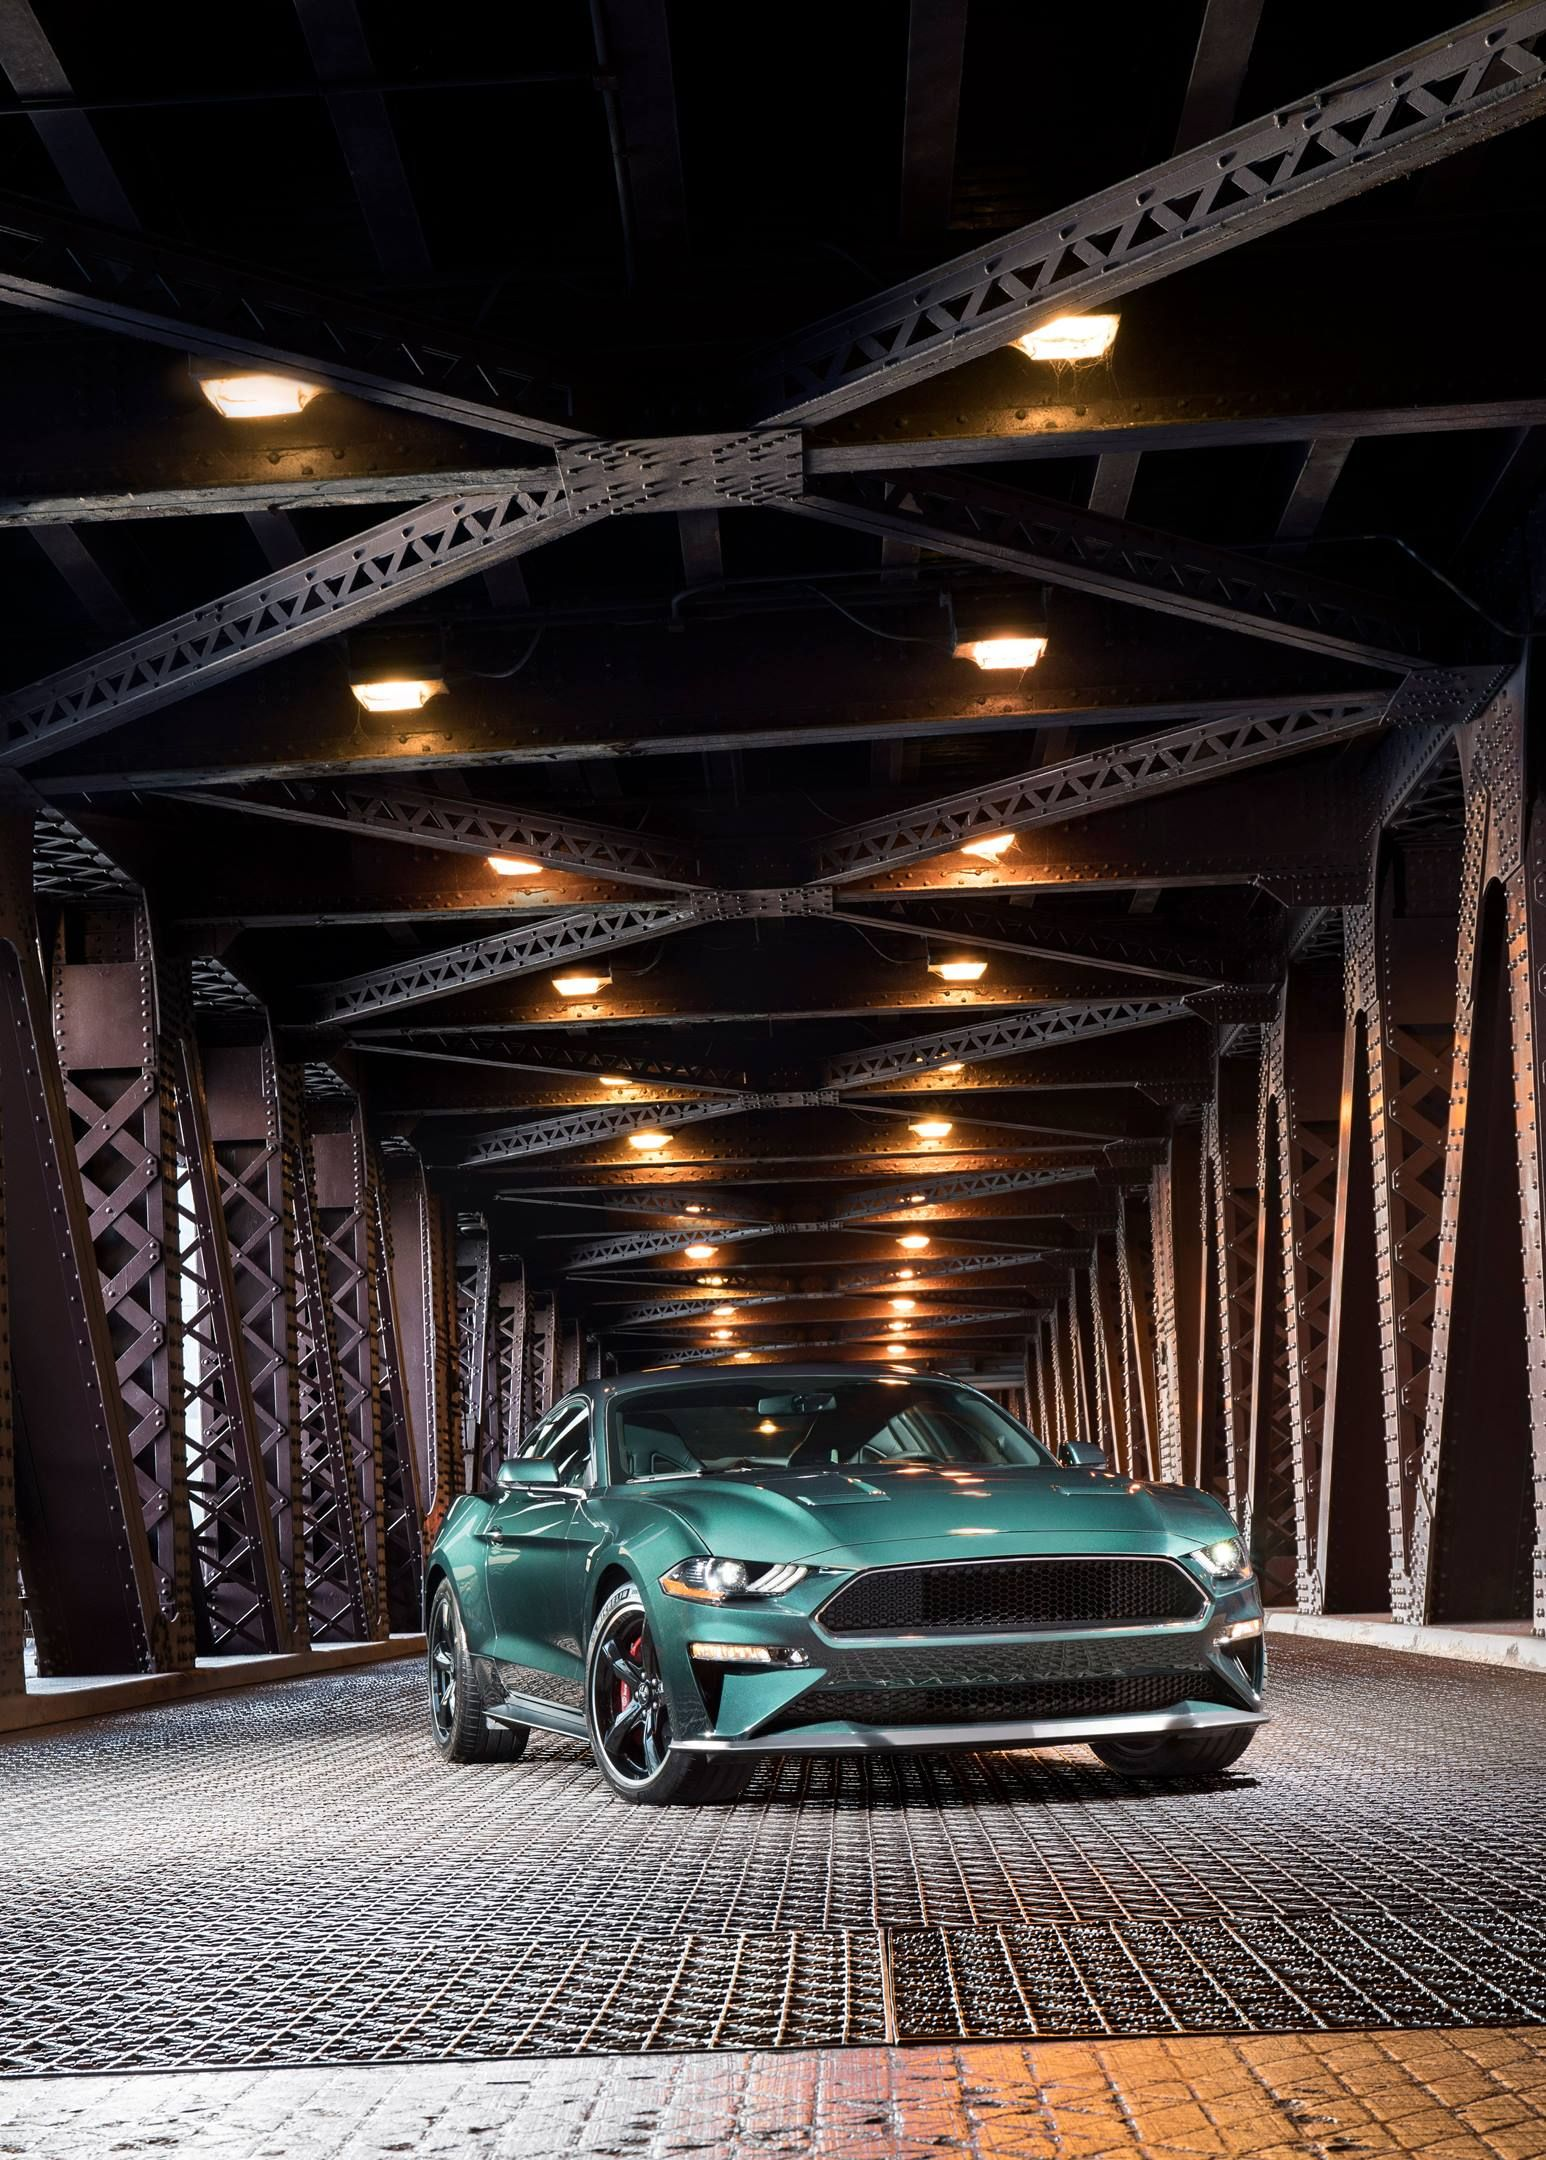 The 2019 Ford Mustang Bullitt Is Unveiled At The 2018 North American